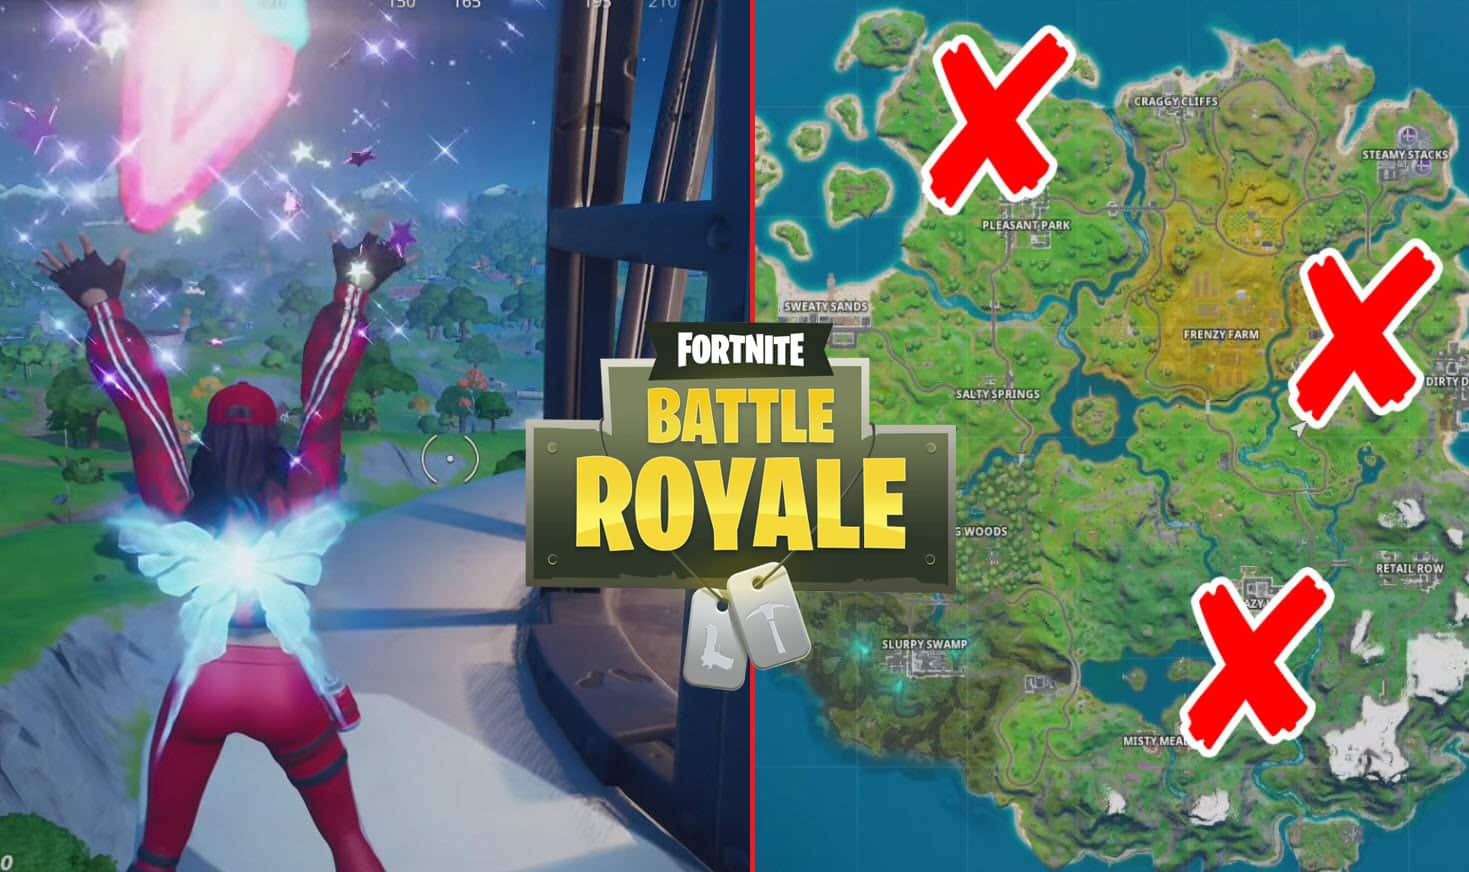 Fortnite Dance At Compact Cars Lockies Lighthouse And